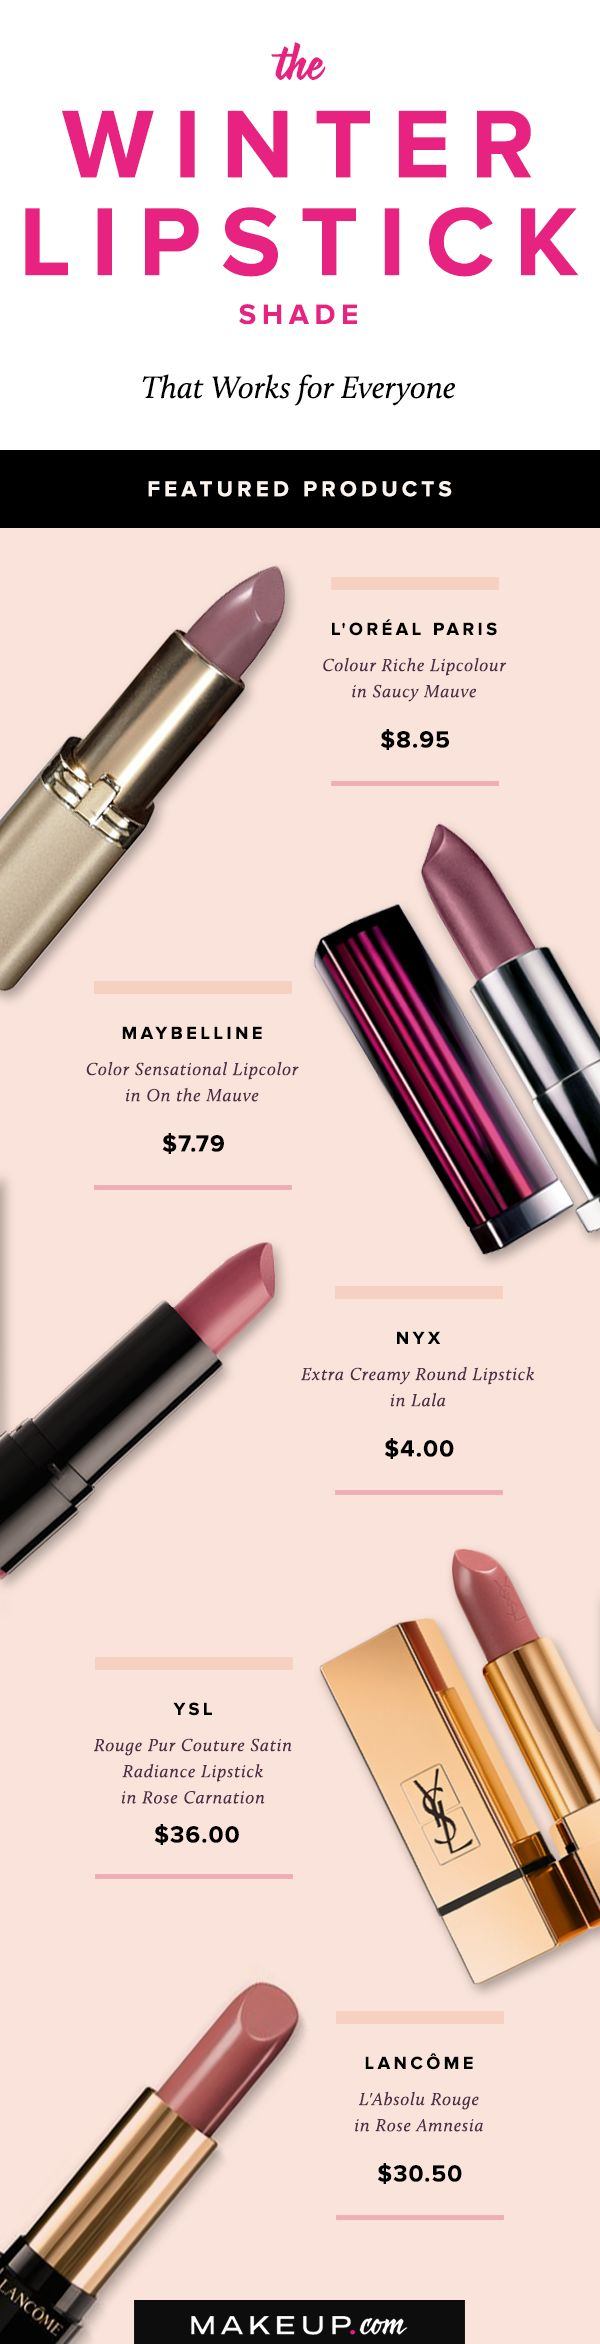 We all know that winter makeup typically involves deep, rich shades of plum, burgundy and brown. However, winter lips don't always have to take a dark tone to stand out! In fact, our latest winter lipstick obsession leans on the cooler side. That's right, we're talking mauve. Check out why this shade of lipstick is the perfect winter makeup staple.